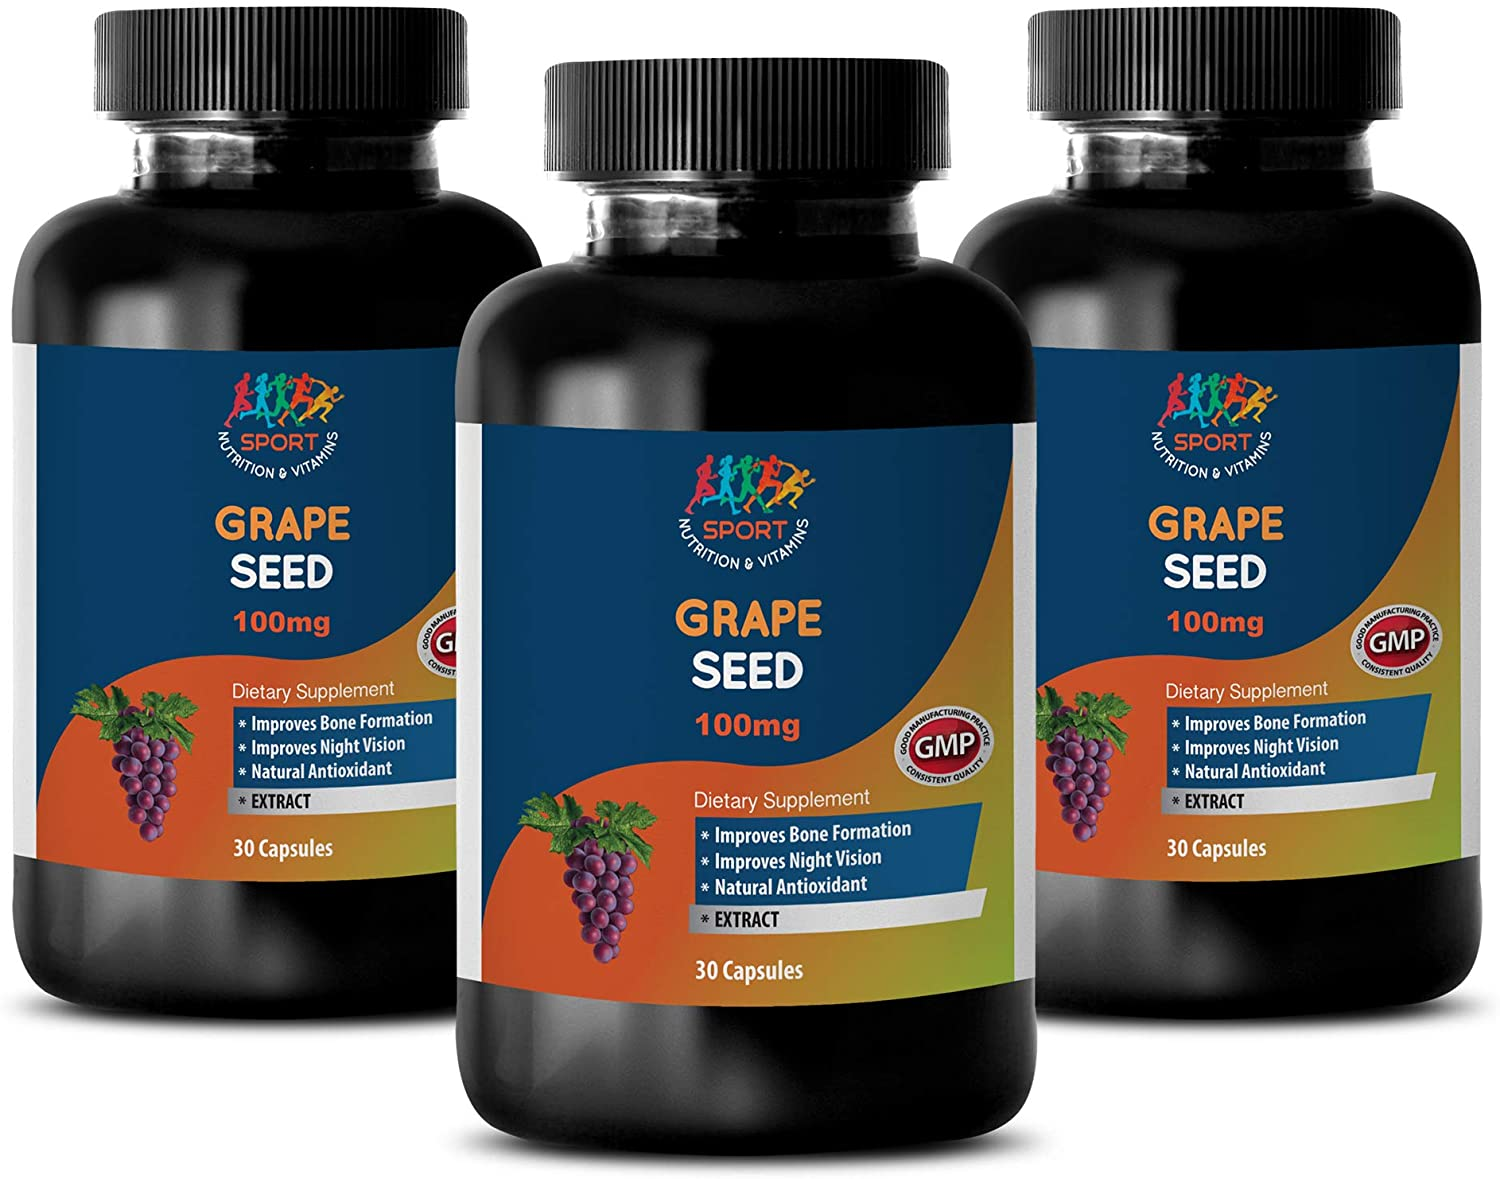 Anti Aging Supplements for Men - Grape Seed 100 MG - Dietary Supplement - grapeseed Extract Supplement - 3 Bottles 90 Capsules